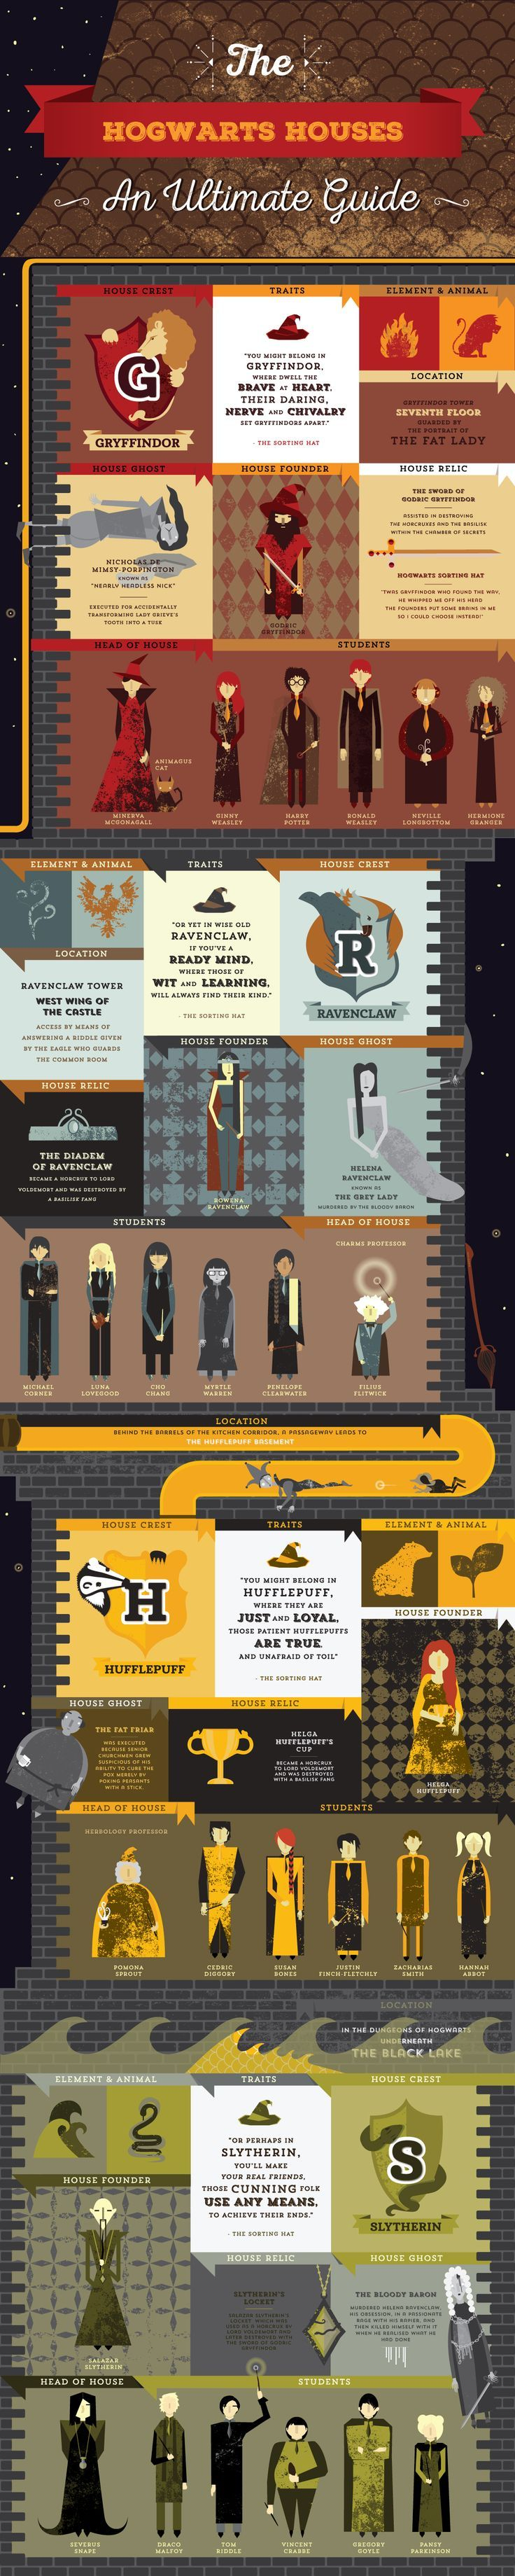 Harry Potter Infographic : The Hogwarts Houses on Behance                                                                                                                                                                                 More